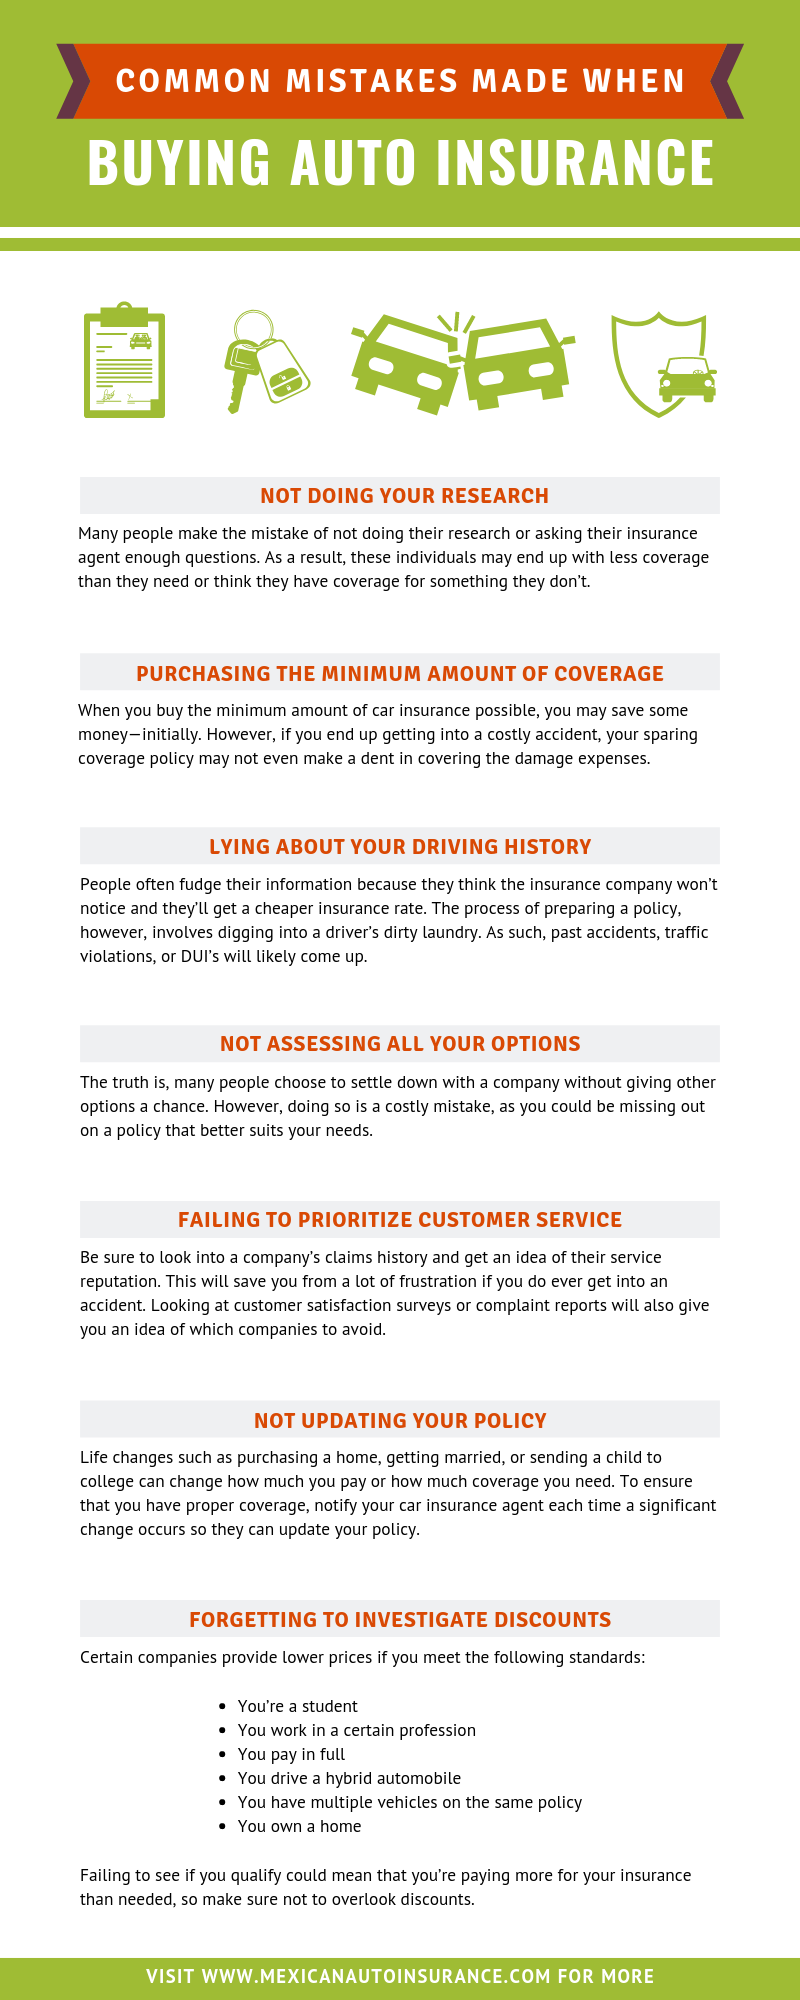 Common Mistakes Made When Buying Auto Insurance infographic